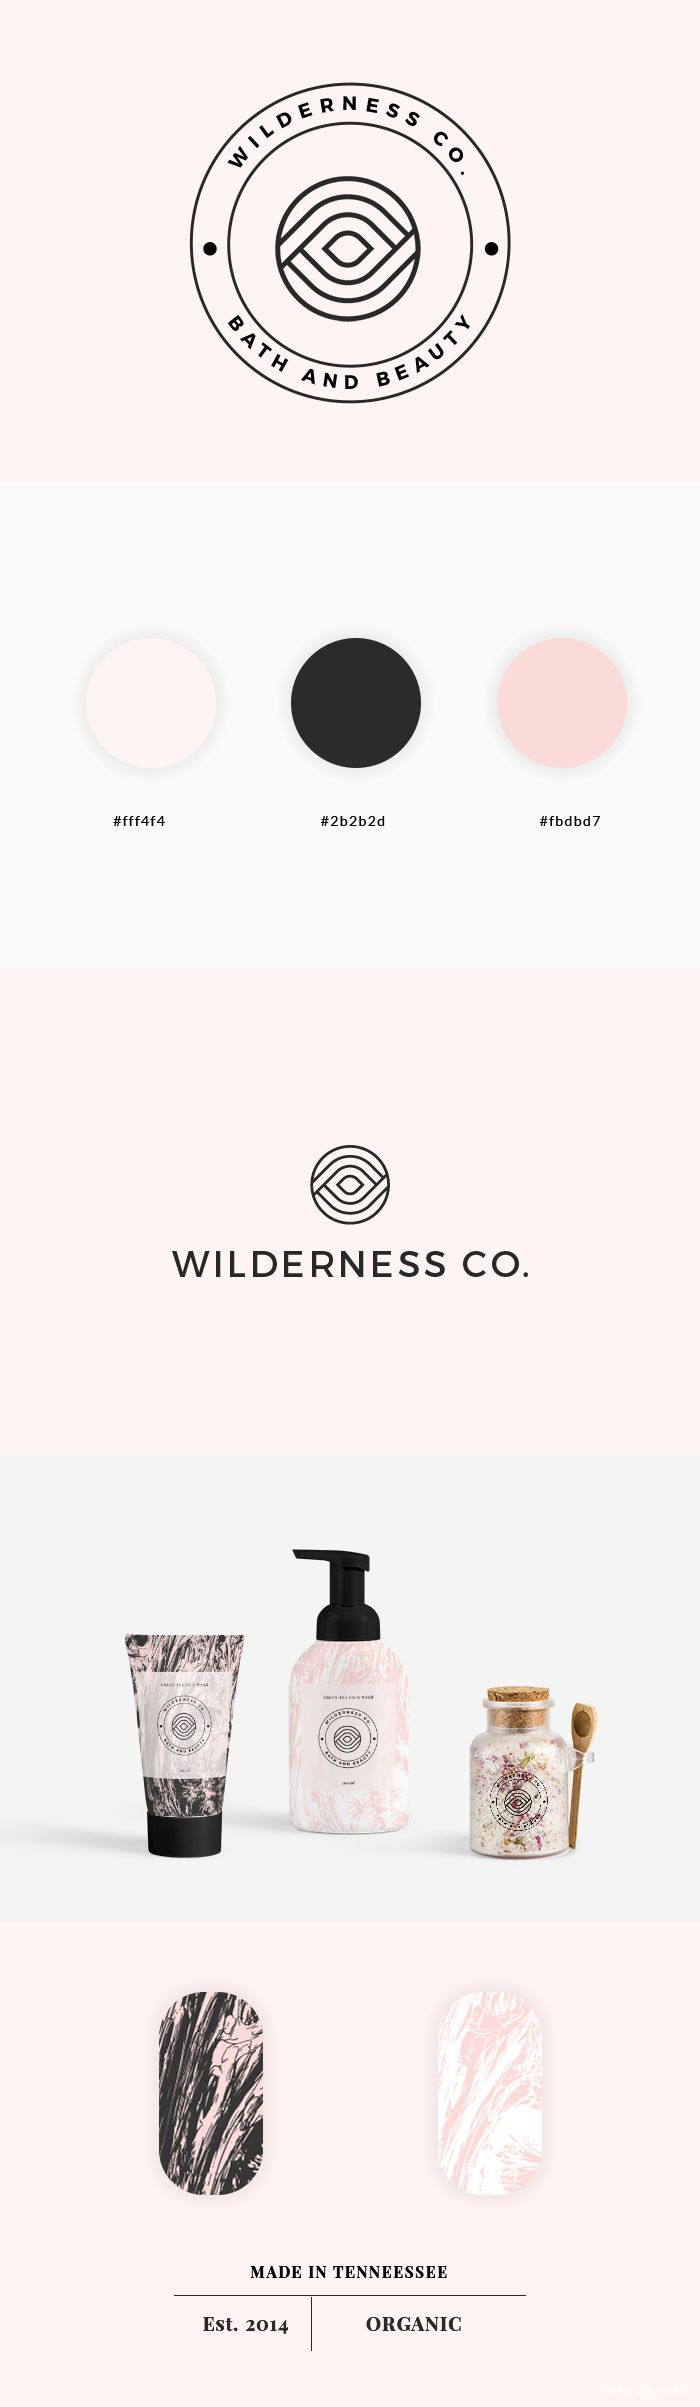 wilderness beauty branding by smuug